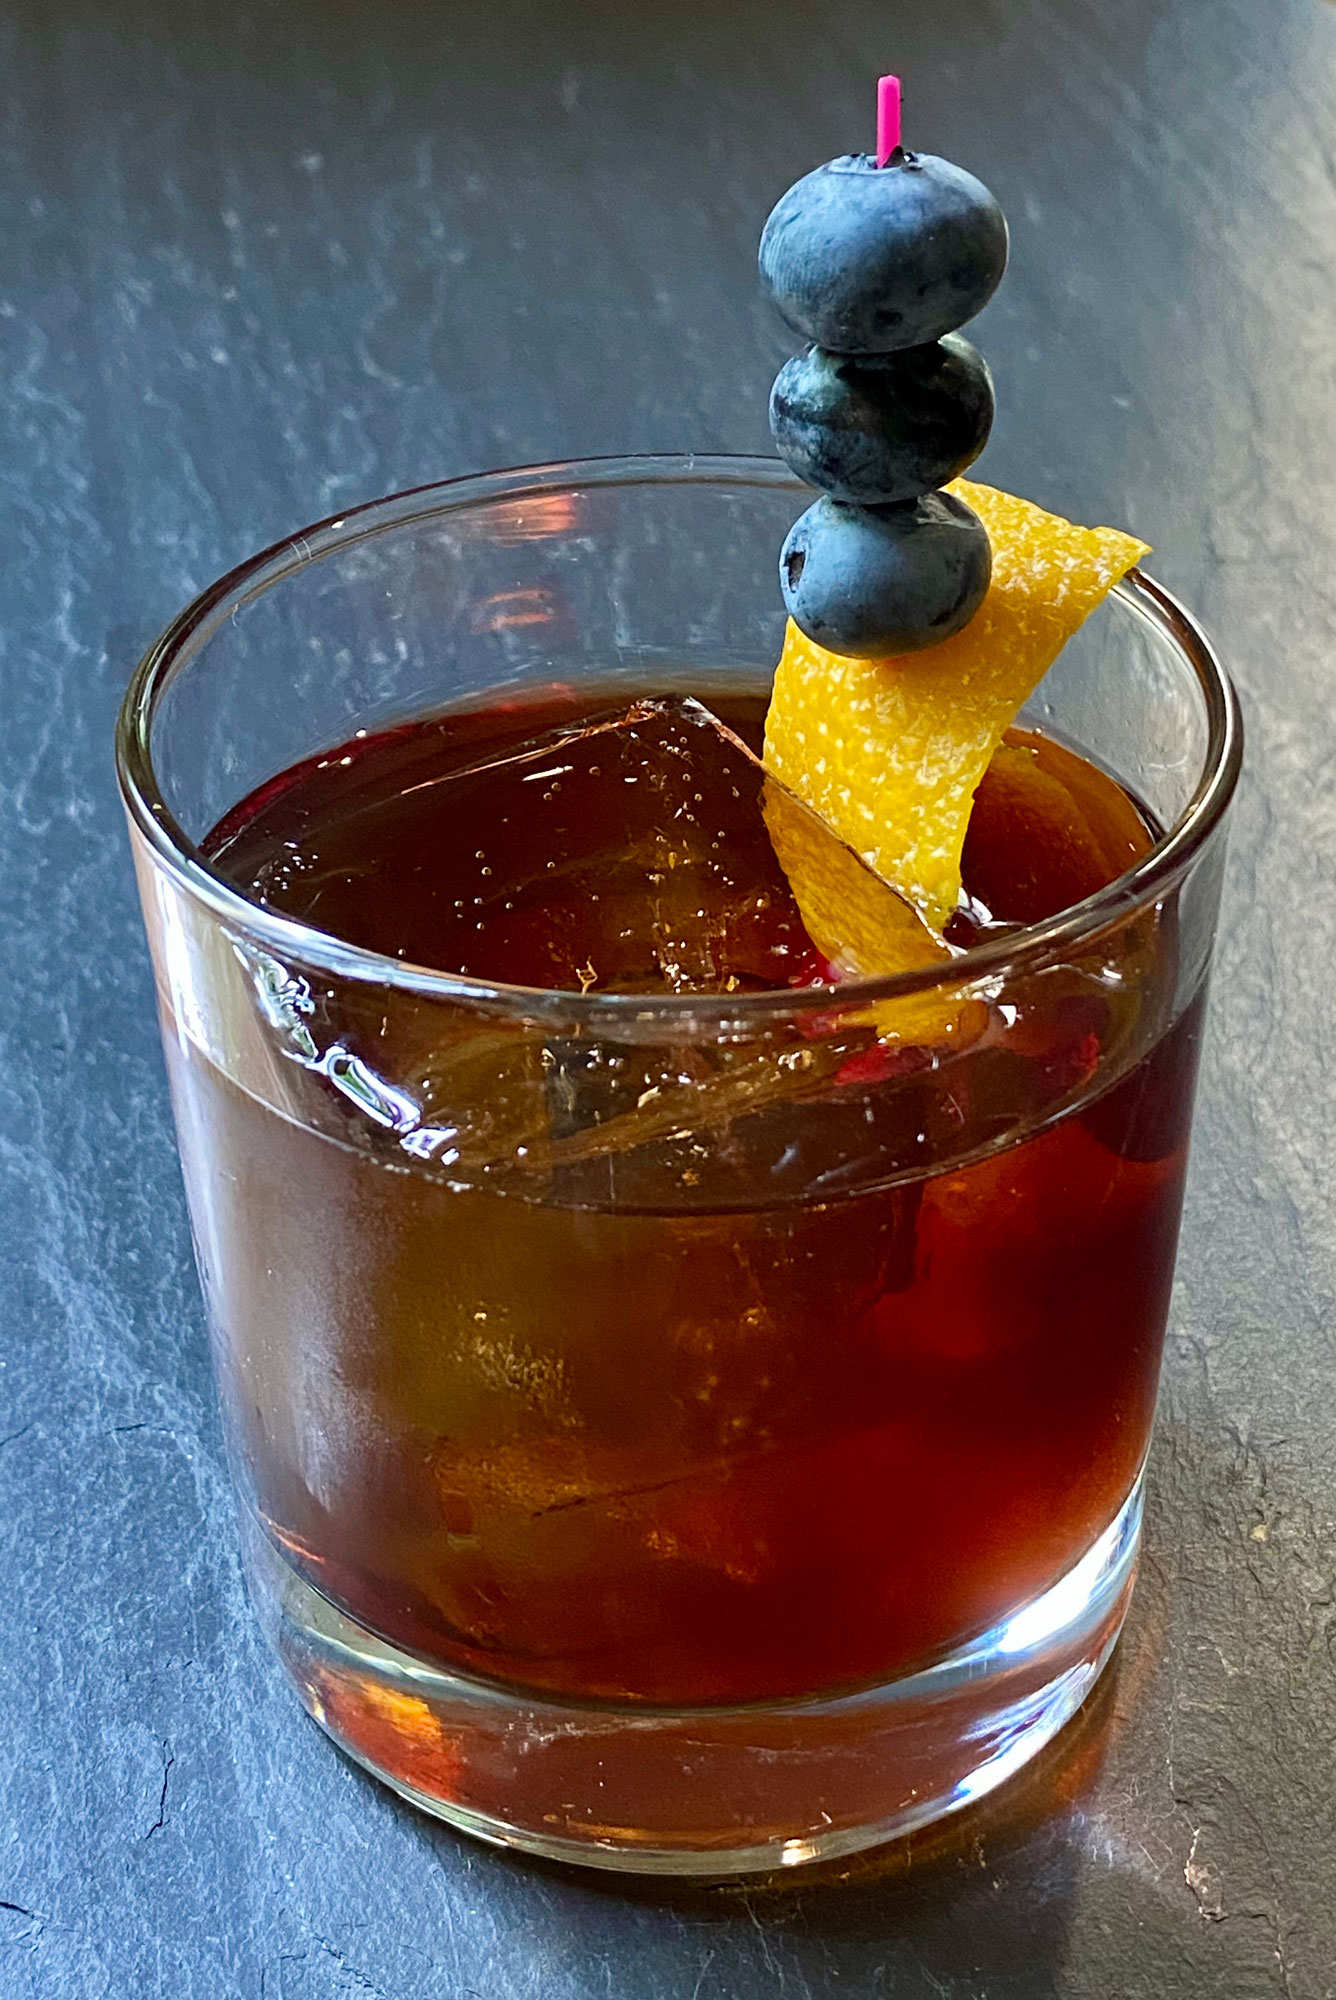 An example of the My One and Only Blue, the mixed drink (cocktail) featuring bourbon whiskey, and Pasubio Vino Amaro; photo by Martin Doudoroff